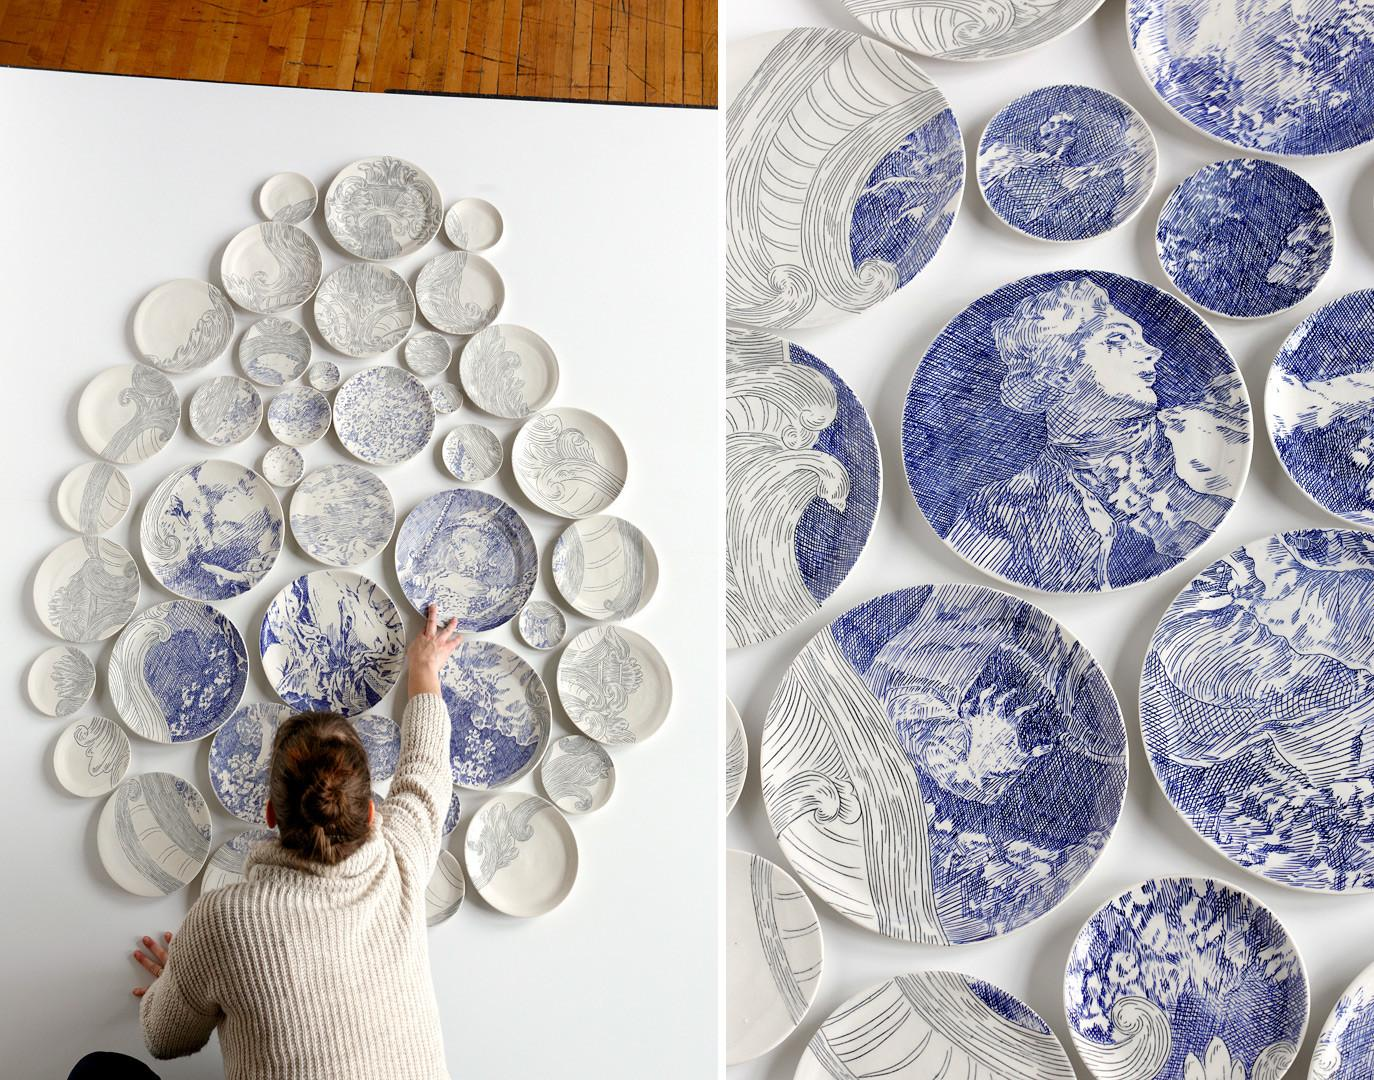 Hand Painted Ceramic Plate Installations Molly Hatch